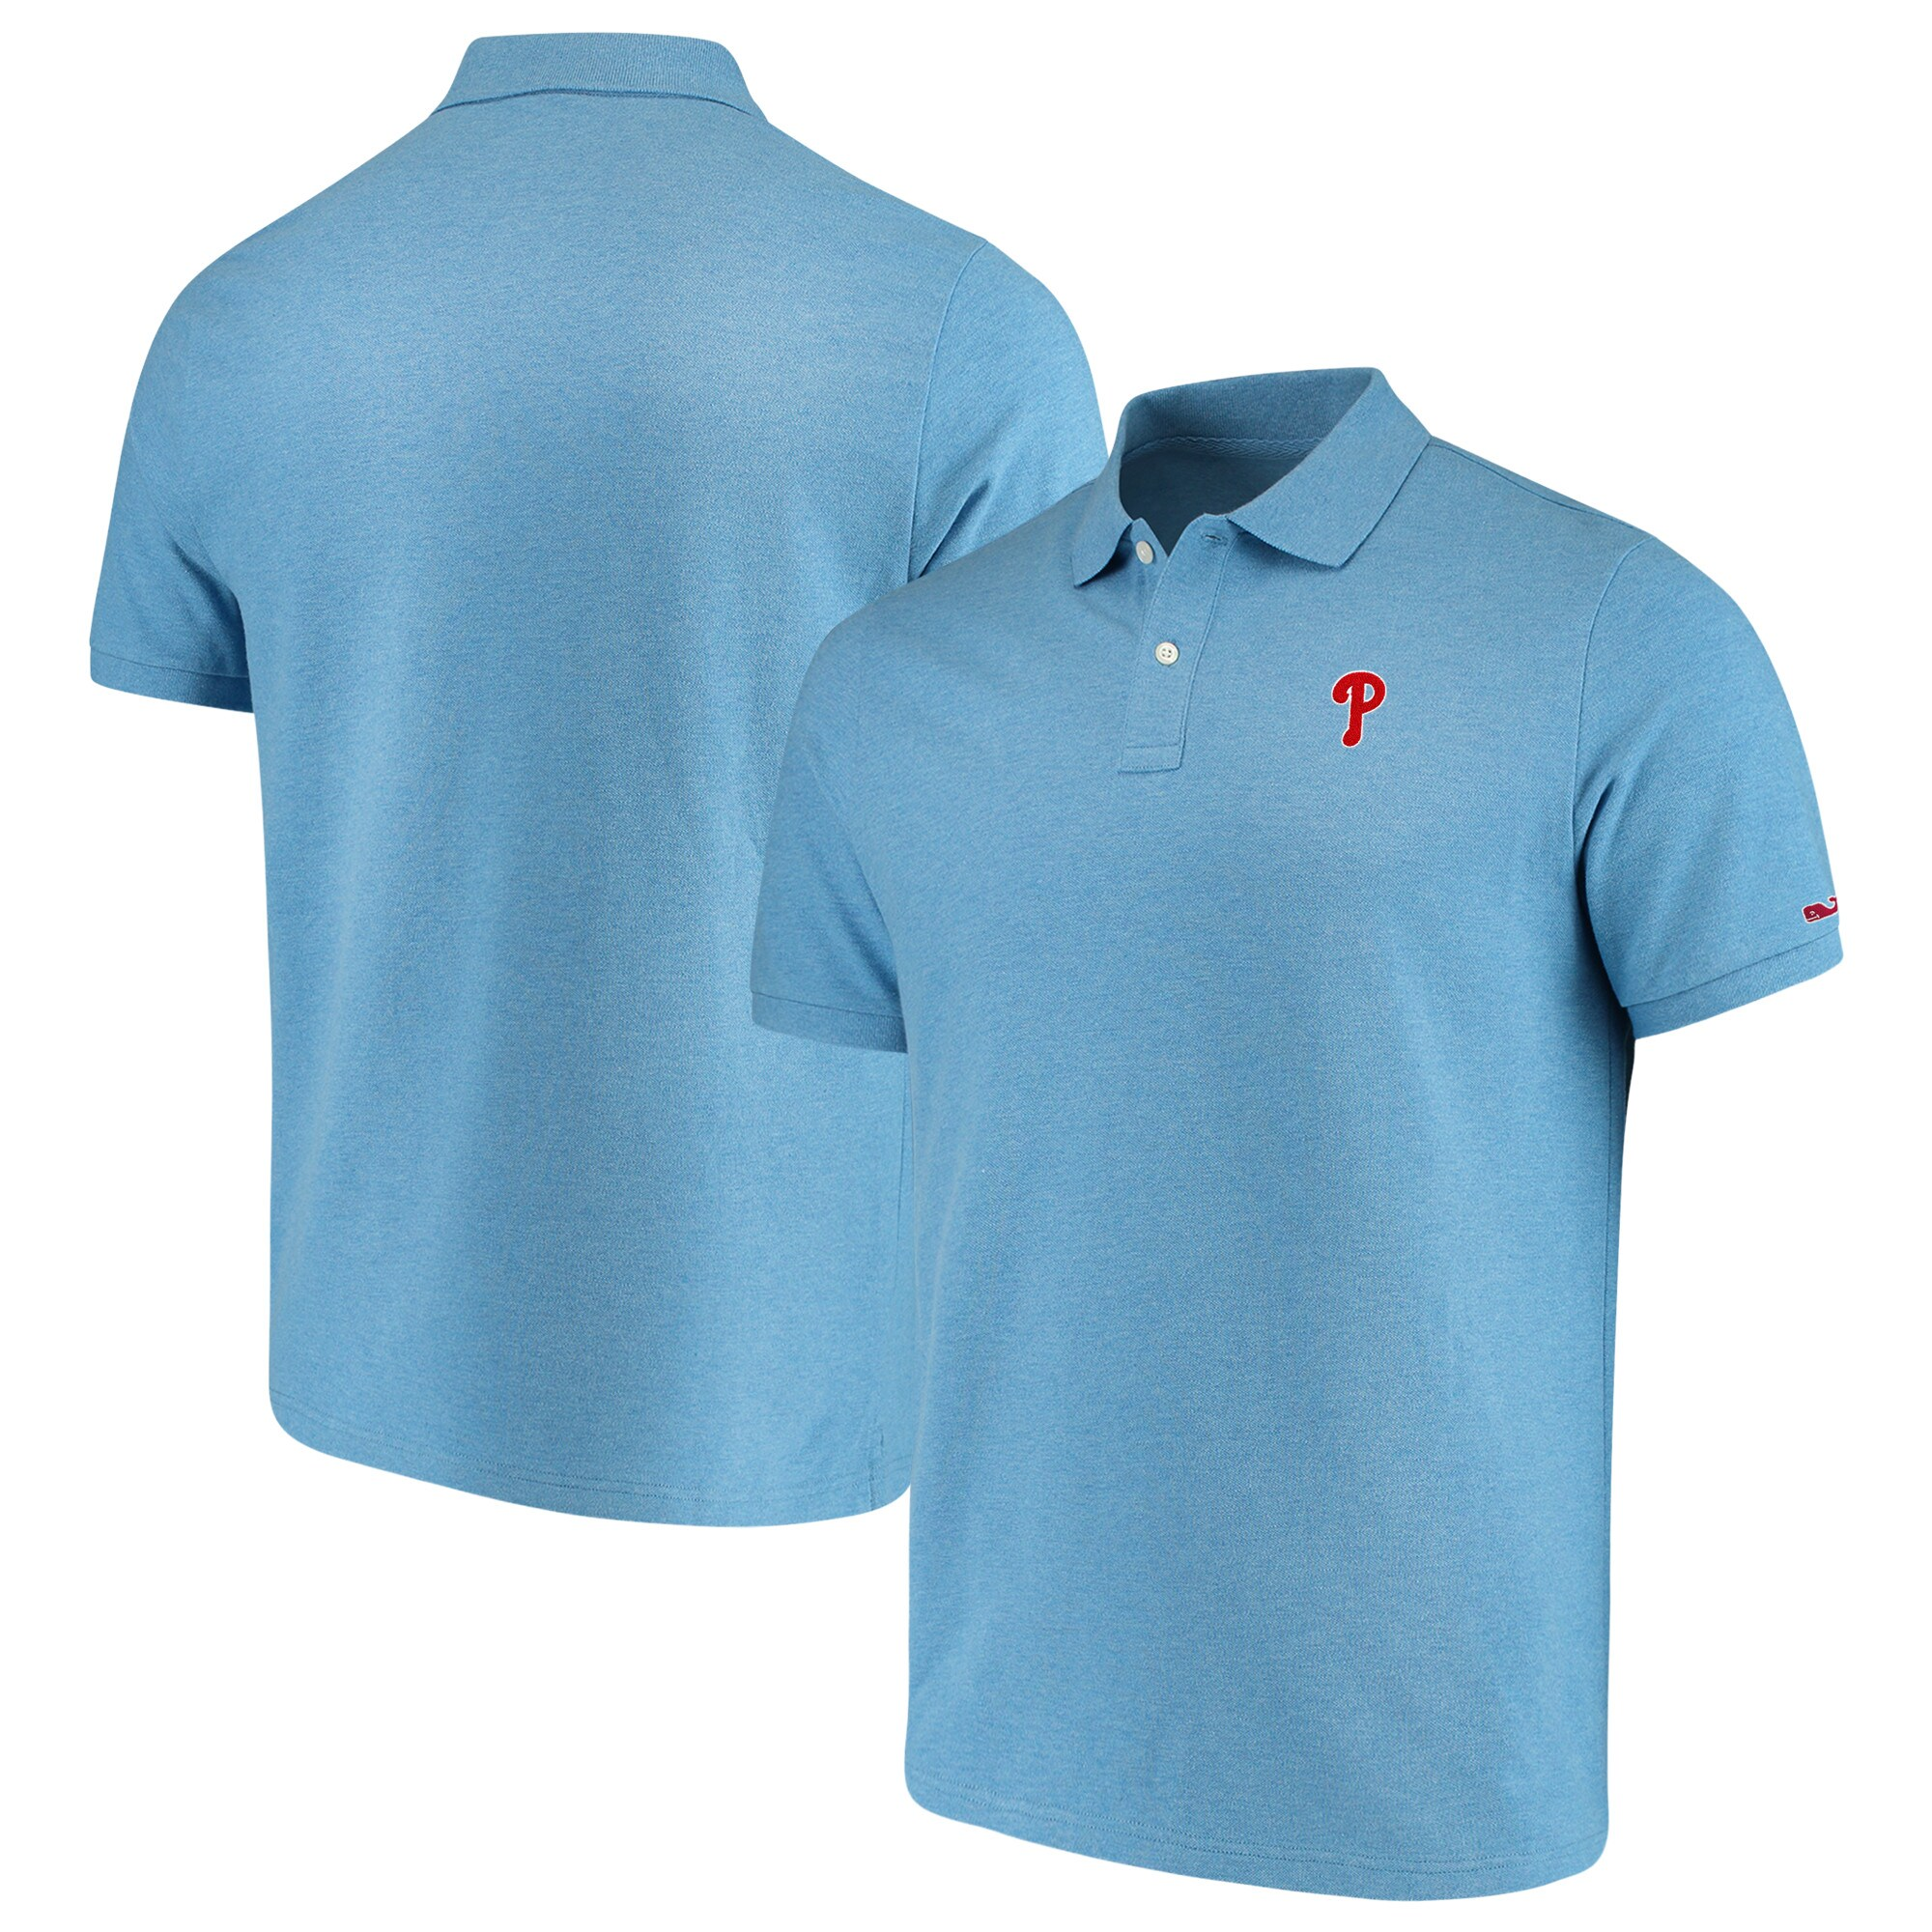 Philadelphia Phillies Vineyard Vines Stretch Pique Polo - Light Blue